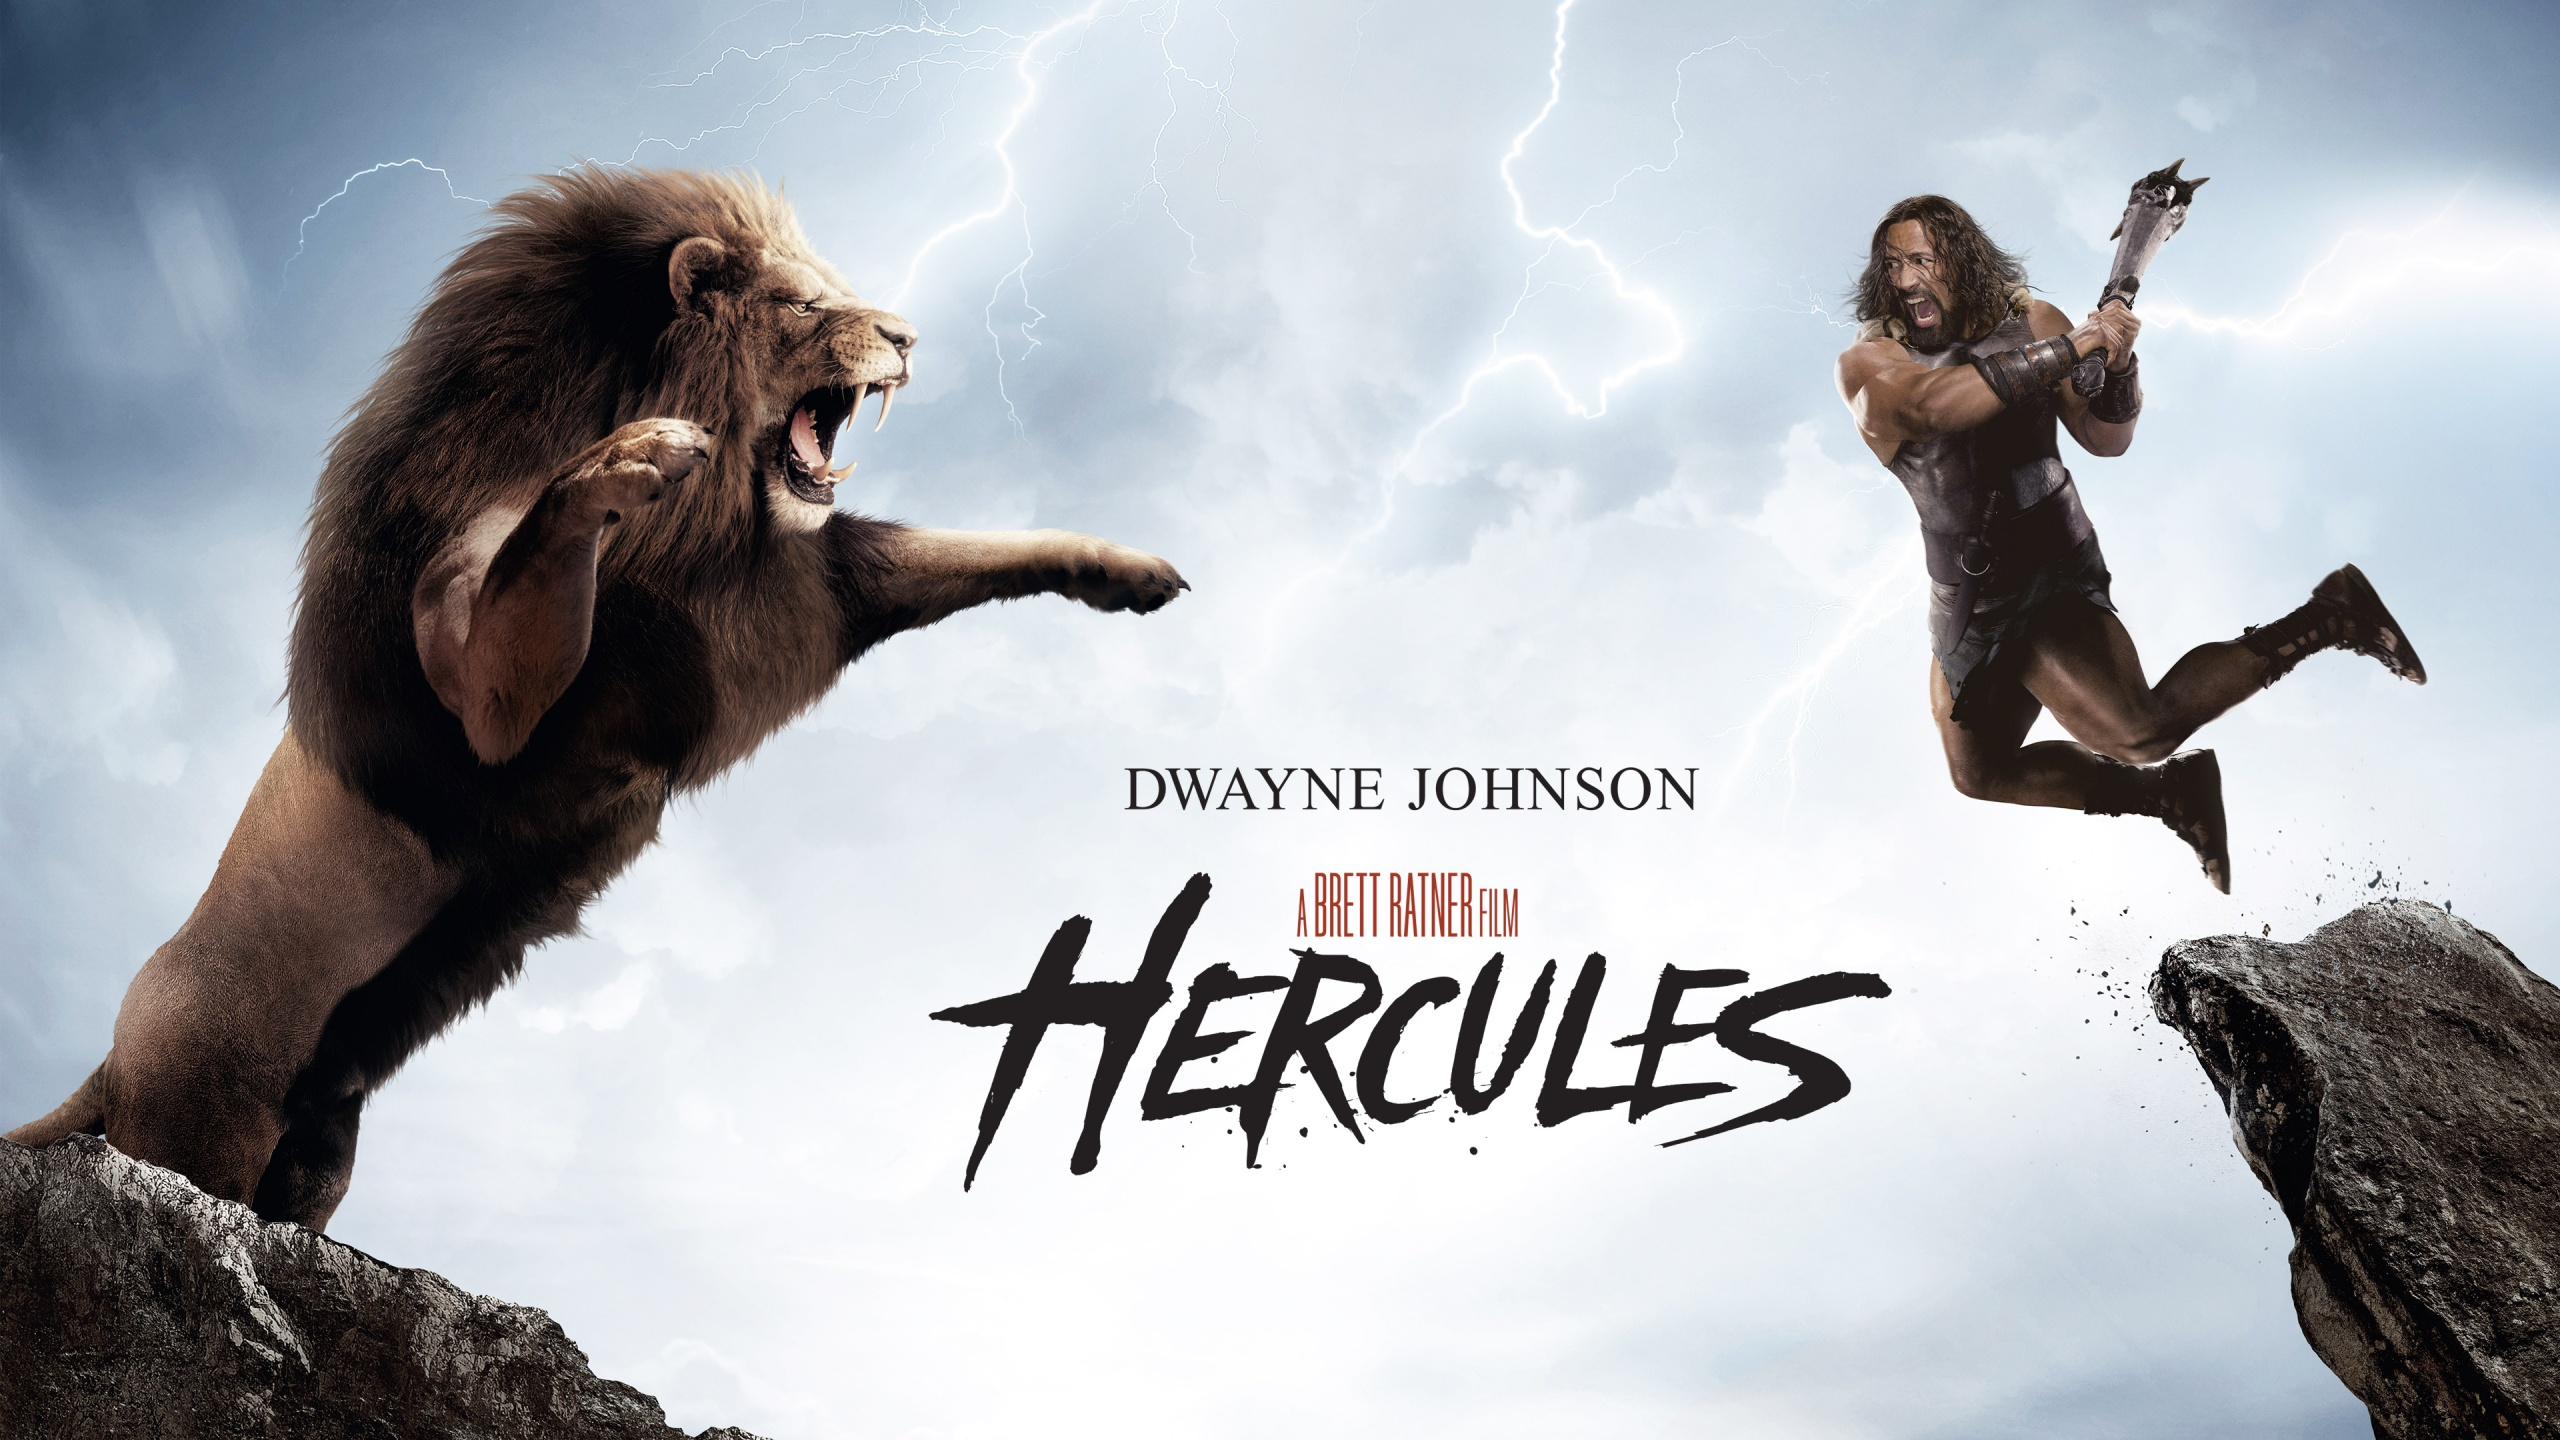 Dwayne Johnson's Hercules